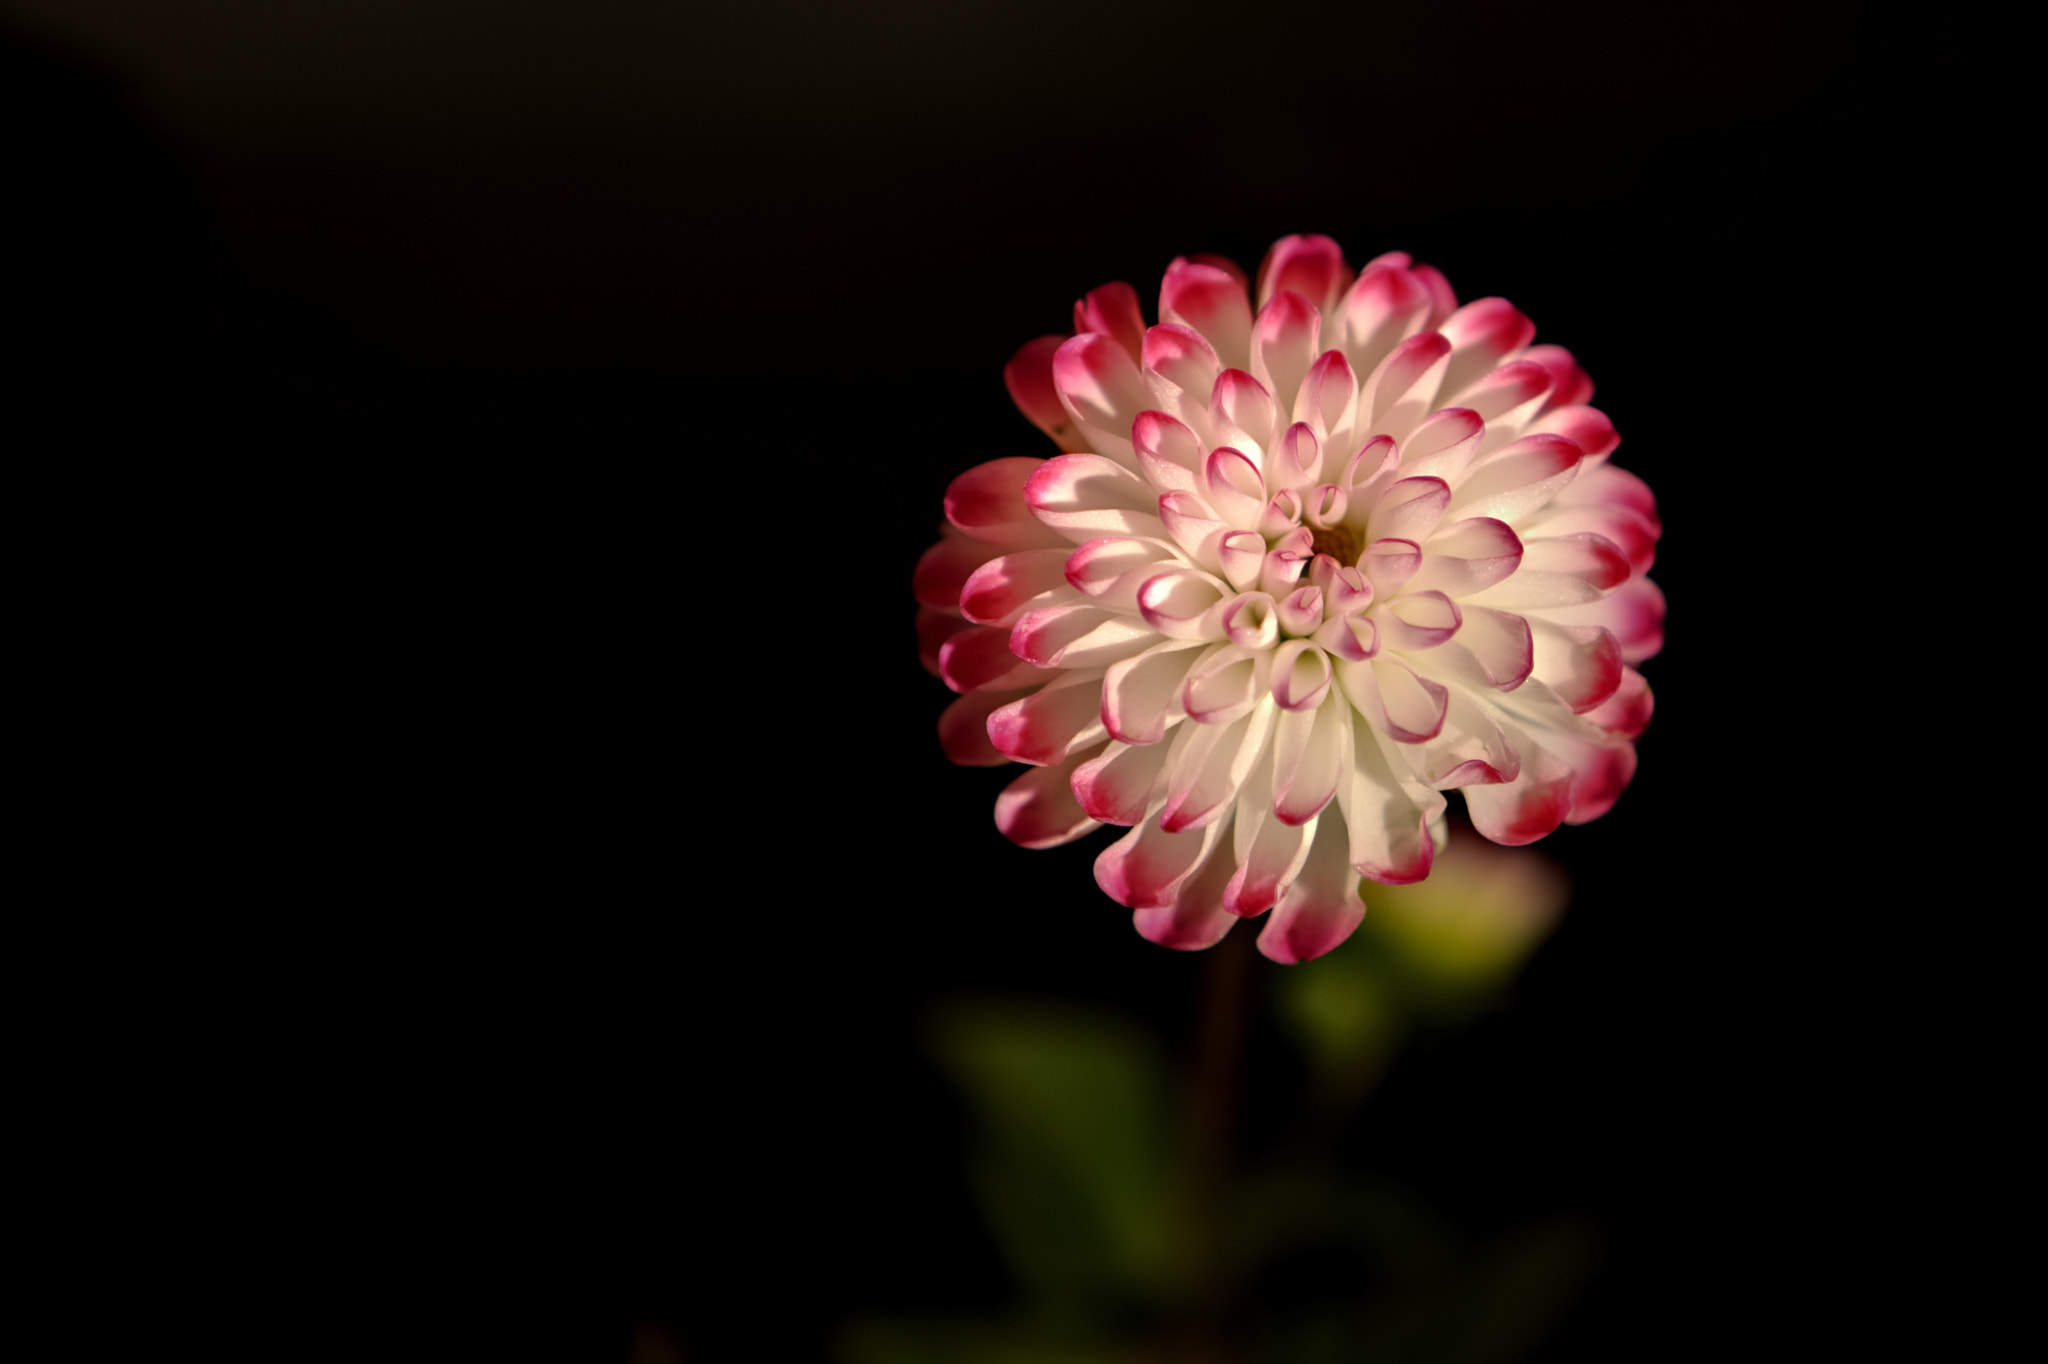 Photograph dahlia by Alessandro Renzi on 500px